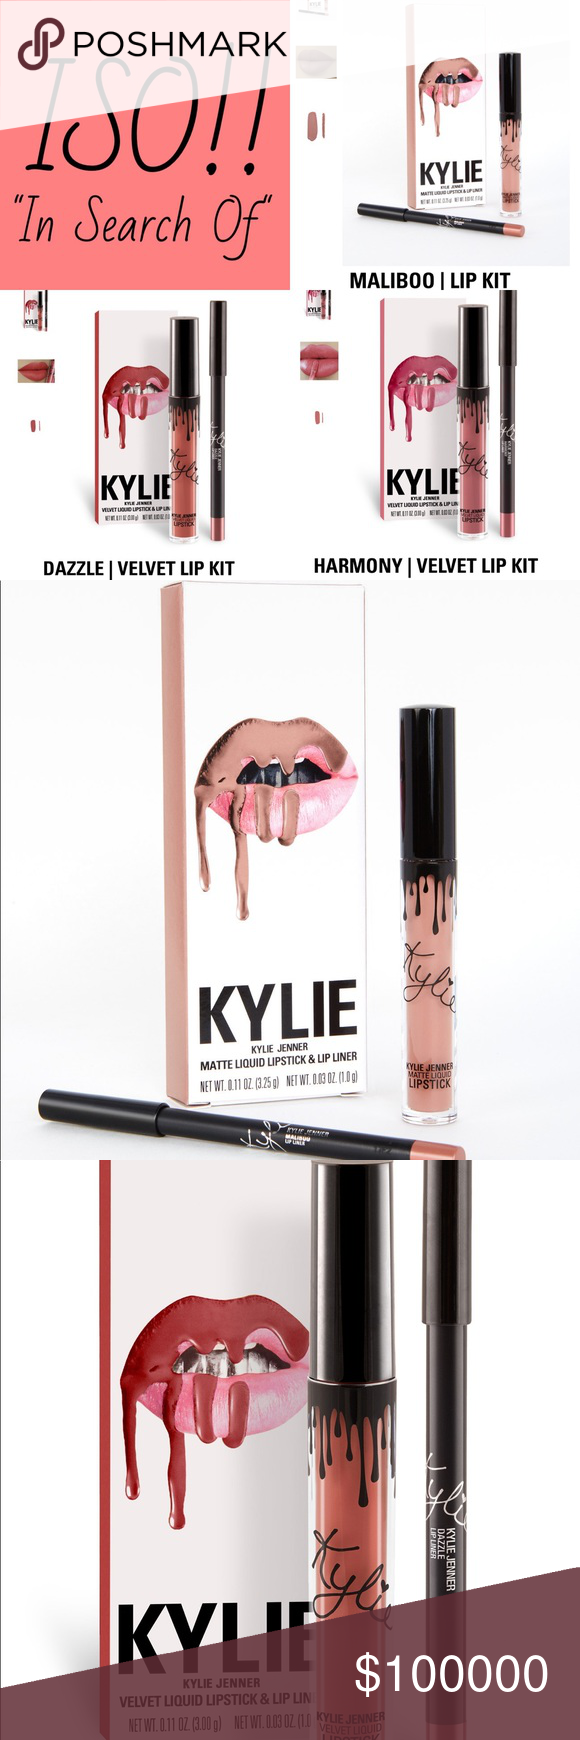 Maliboo Lip Kit By Kylie Cosmetics: Kylie Lip Kit Box, Lip Kit And Kylie